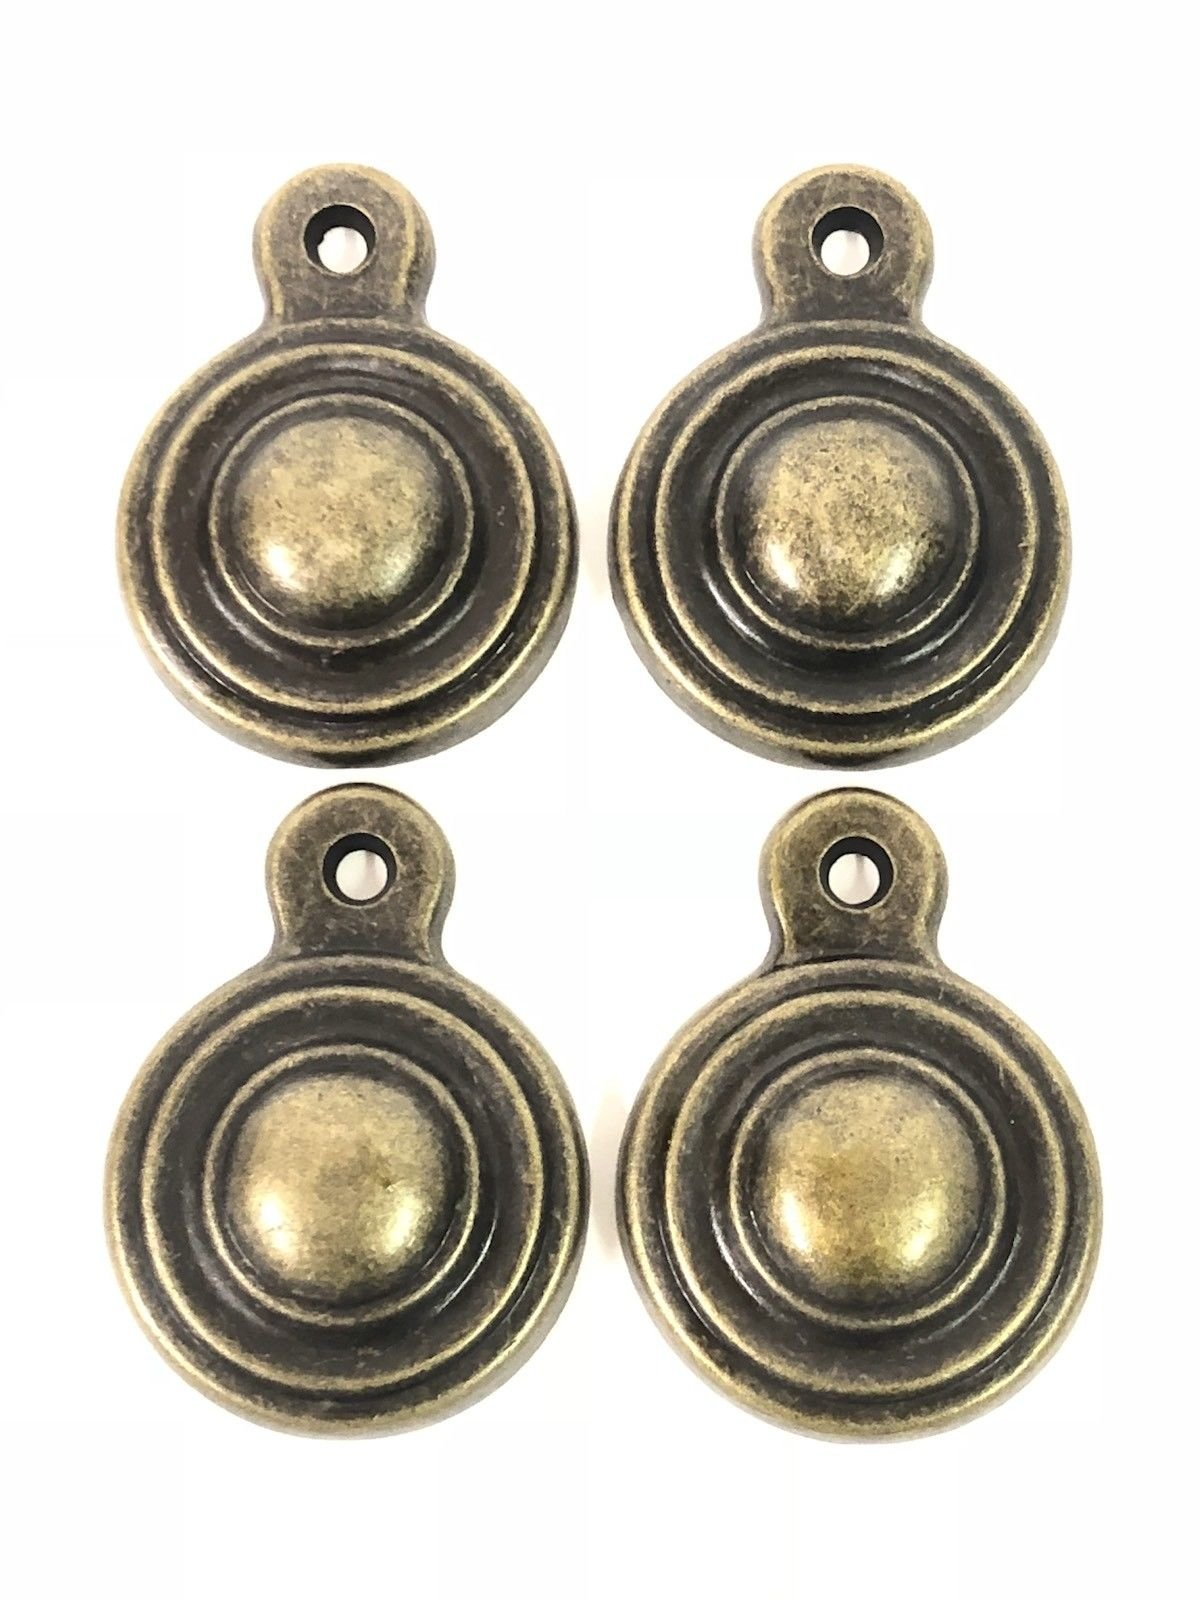 New Antique Bed Bolt Hole Covers Solid Brass Antiqued Finish 4 pieces